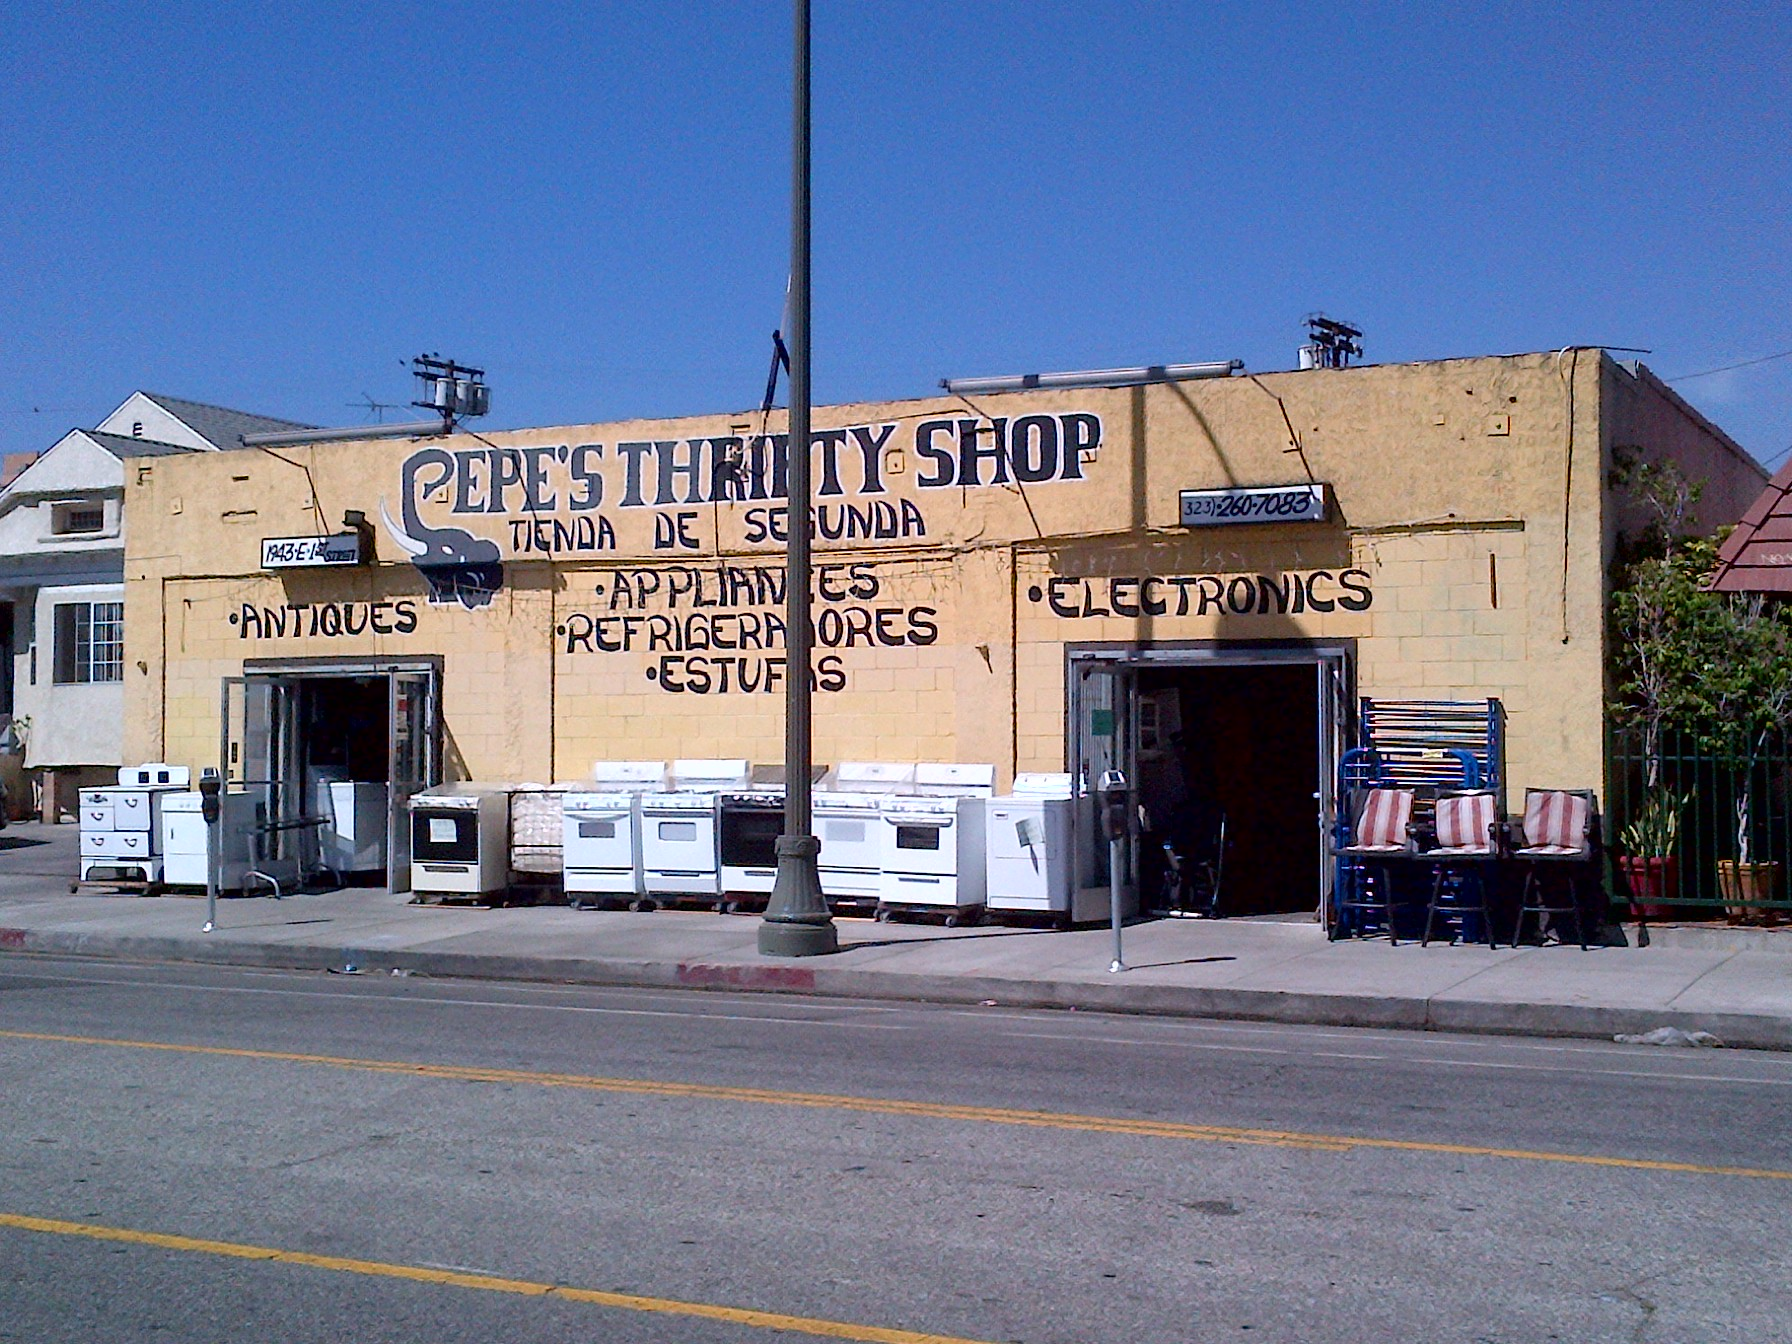 Pepe's Thrifty Shop. Photo: Pepe's Thrifty Shop